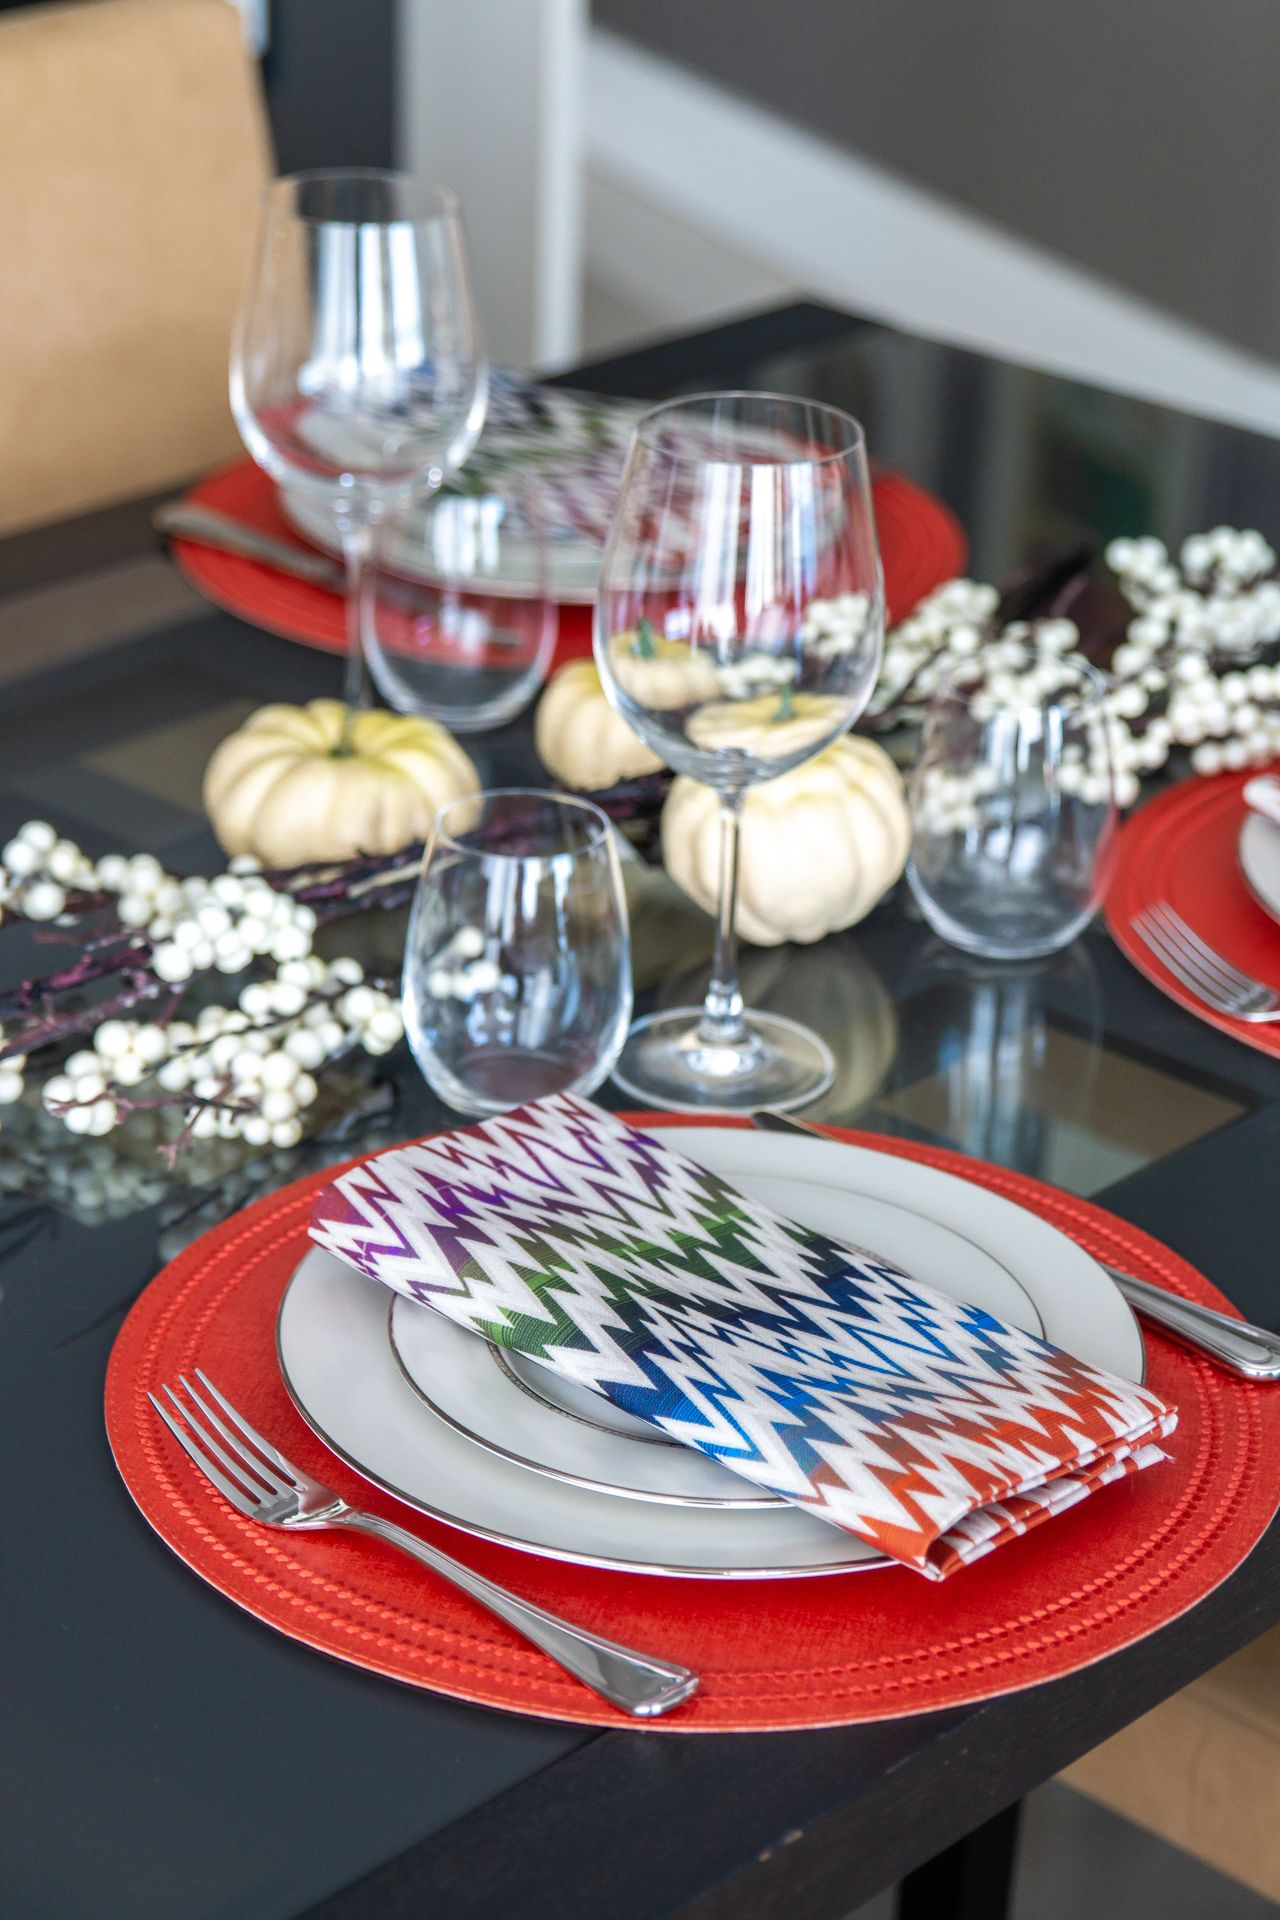 Spruce up your fall settings with new pops of colors: our Fall Must-Haves collection is now live on our website to get you in the spirit of the season! . . . Photo by @stellarmediaagency #homedecor #homedecoration #homeinspo #homeinspiration #tablesetting #tabledecor #tabledecoration #kitchendesign #kitcheninspo #diningroom #diningtable #diningtabledecor #placemat #tablecloth #aroundthetable #tablesettingdecoration #finedining #decor #interiordecor #decorinspo